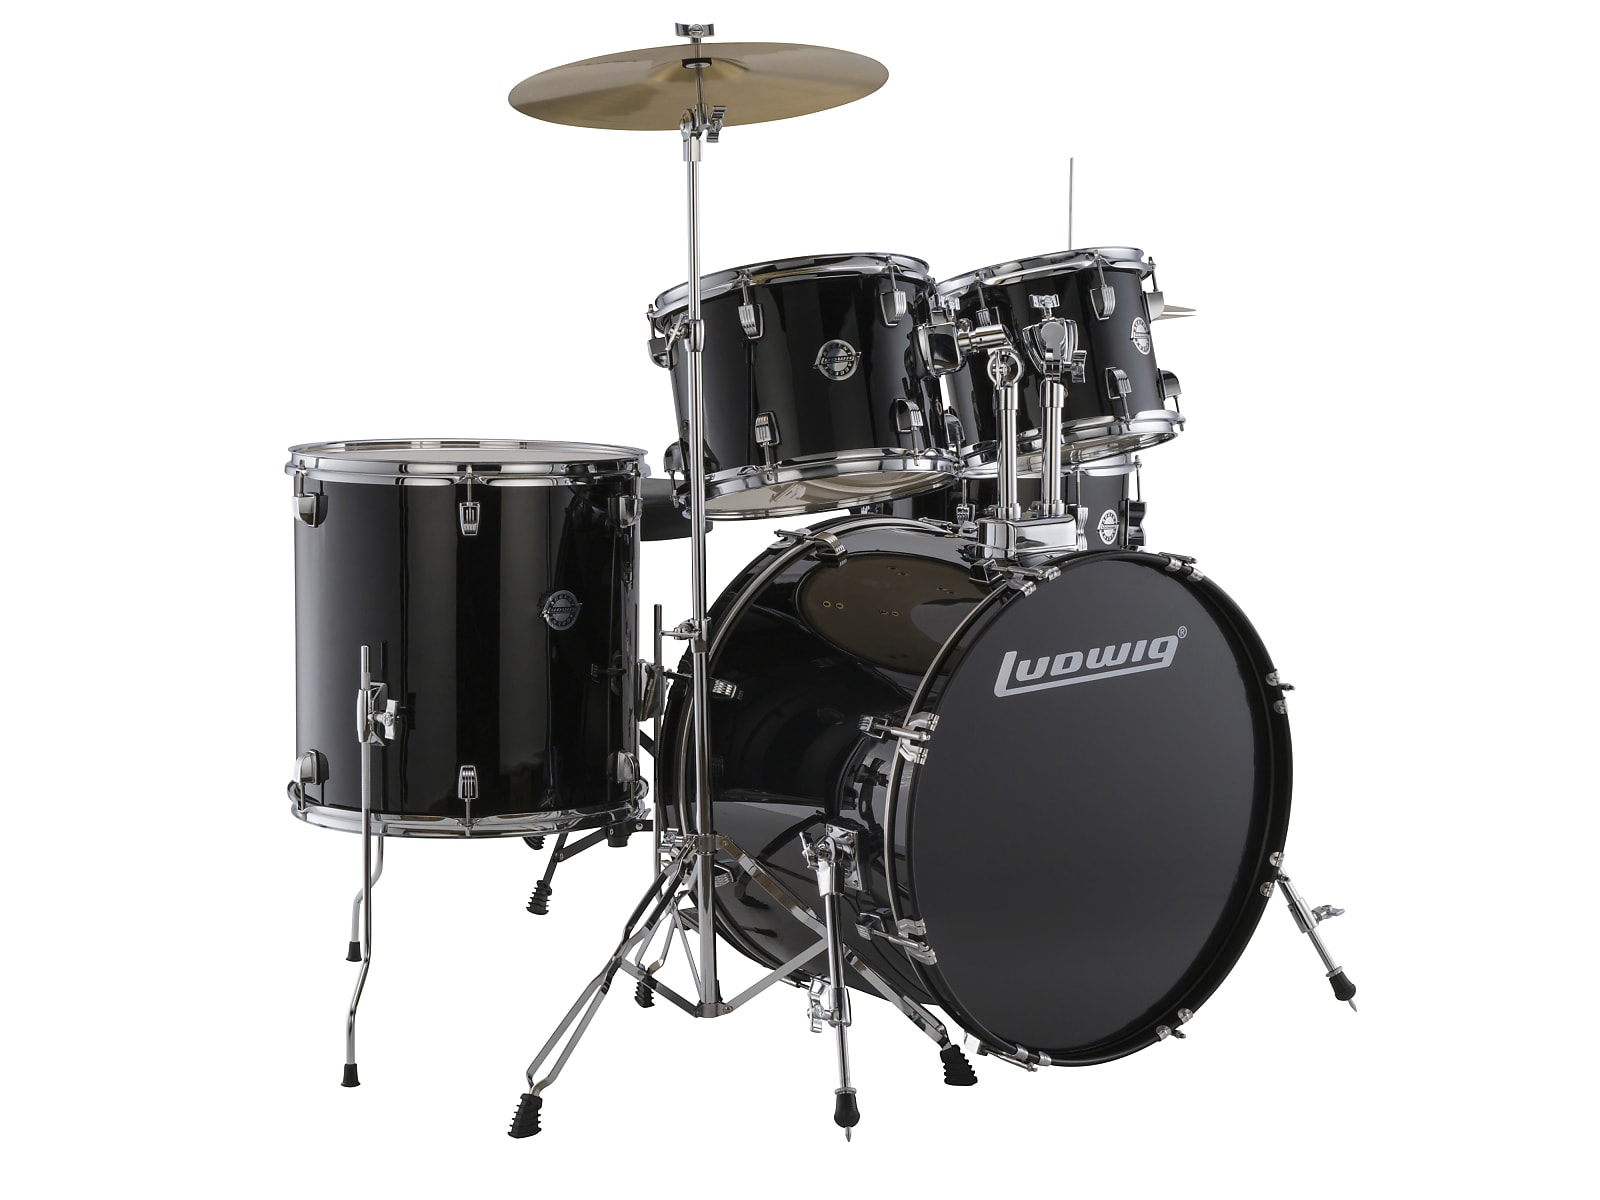 Ludwig LC170 5pc. Accent Fuse Complete Drum Kit - Black 2019